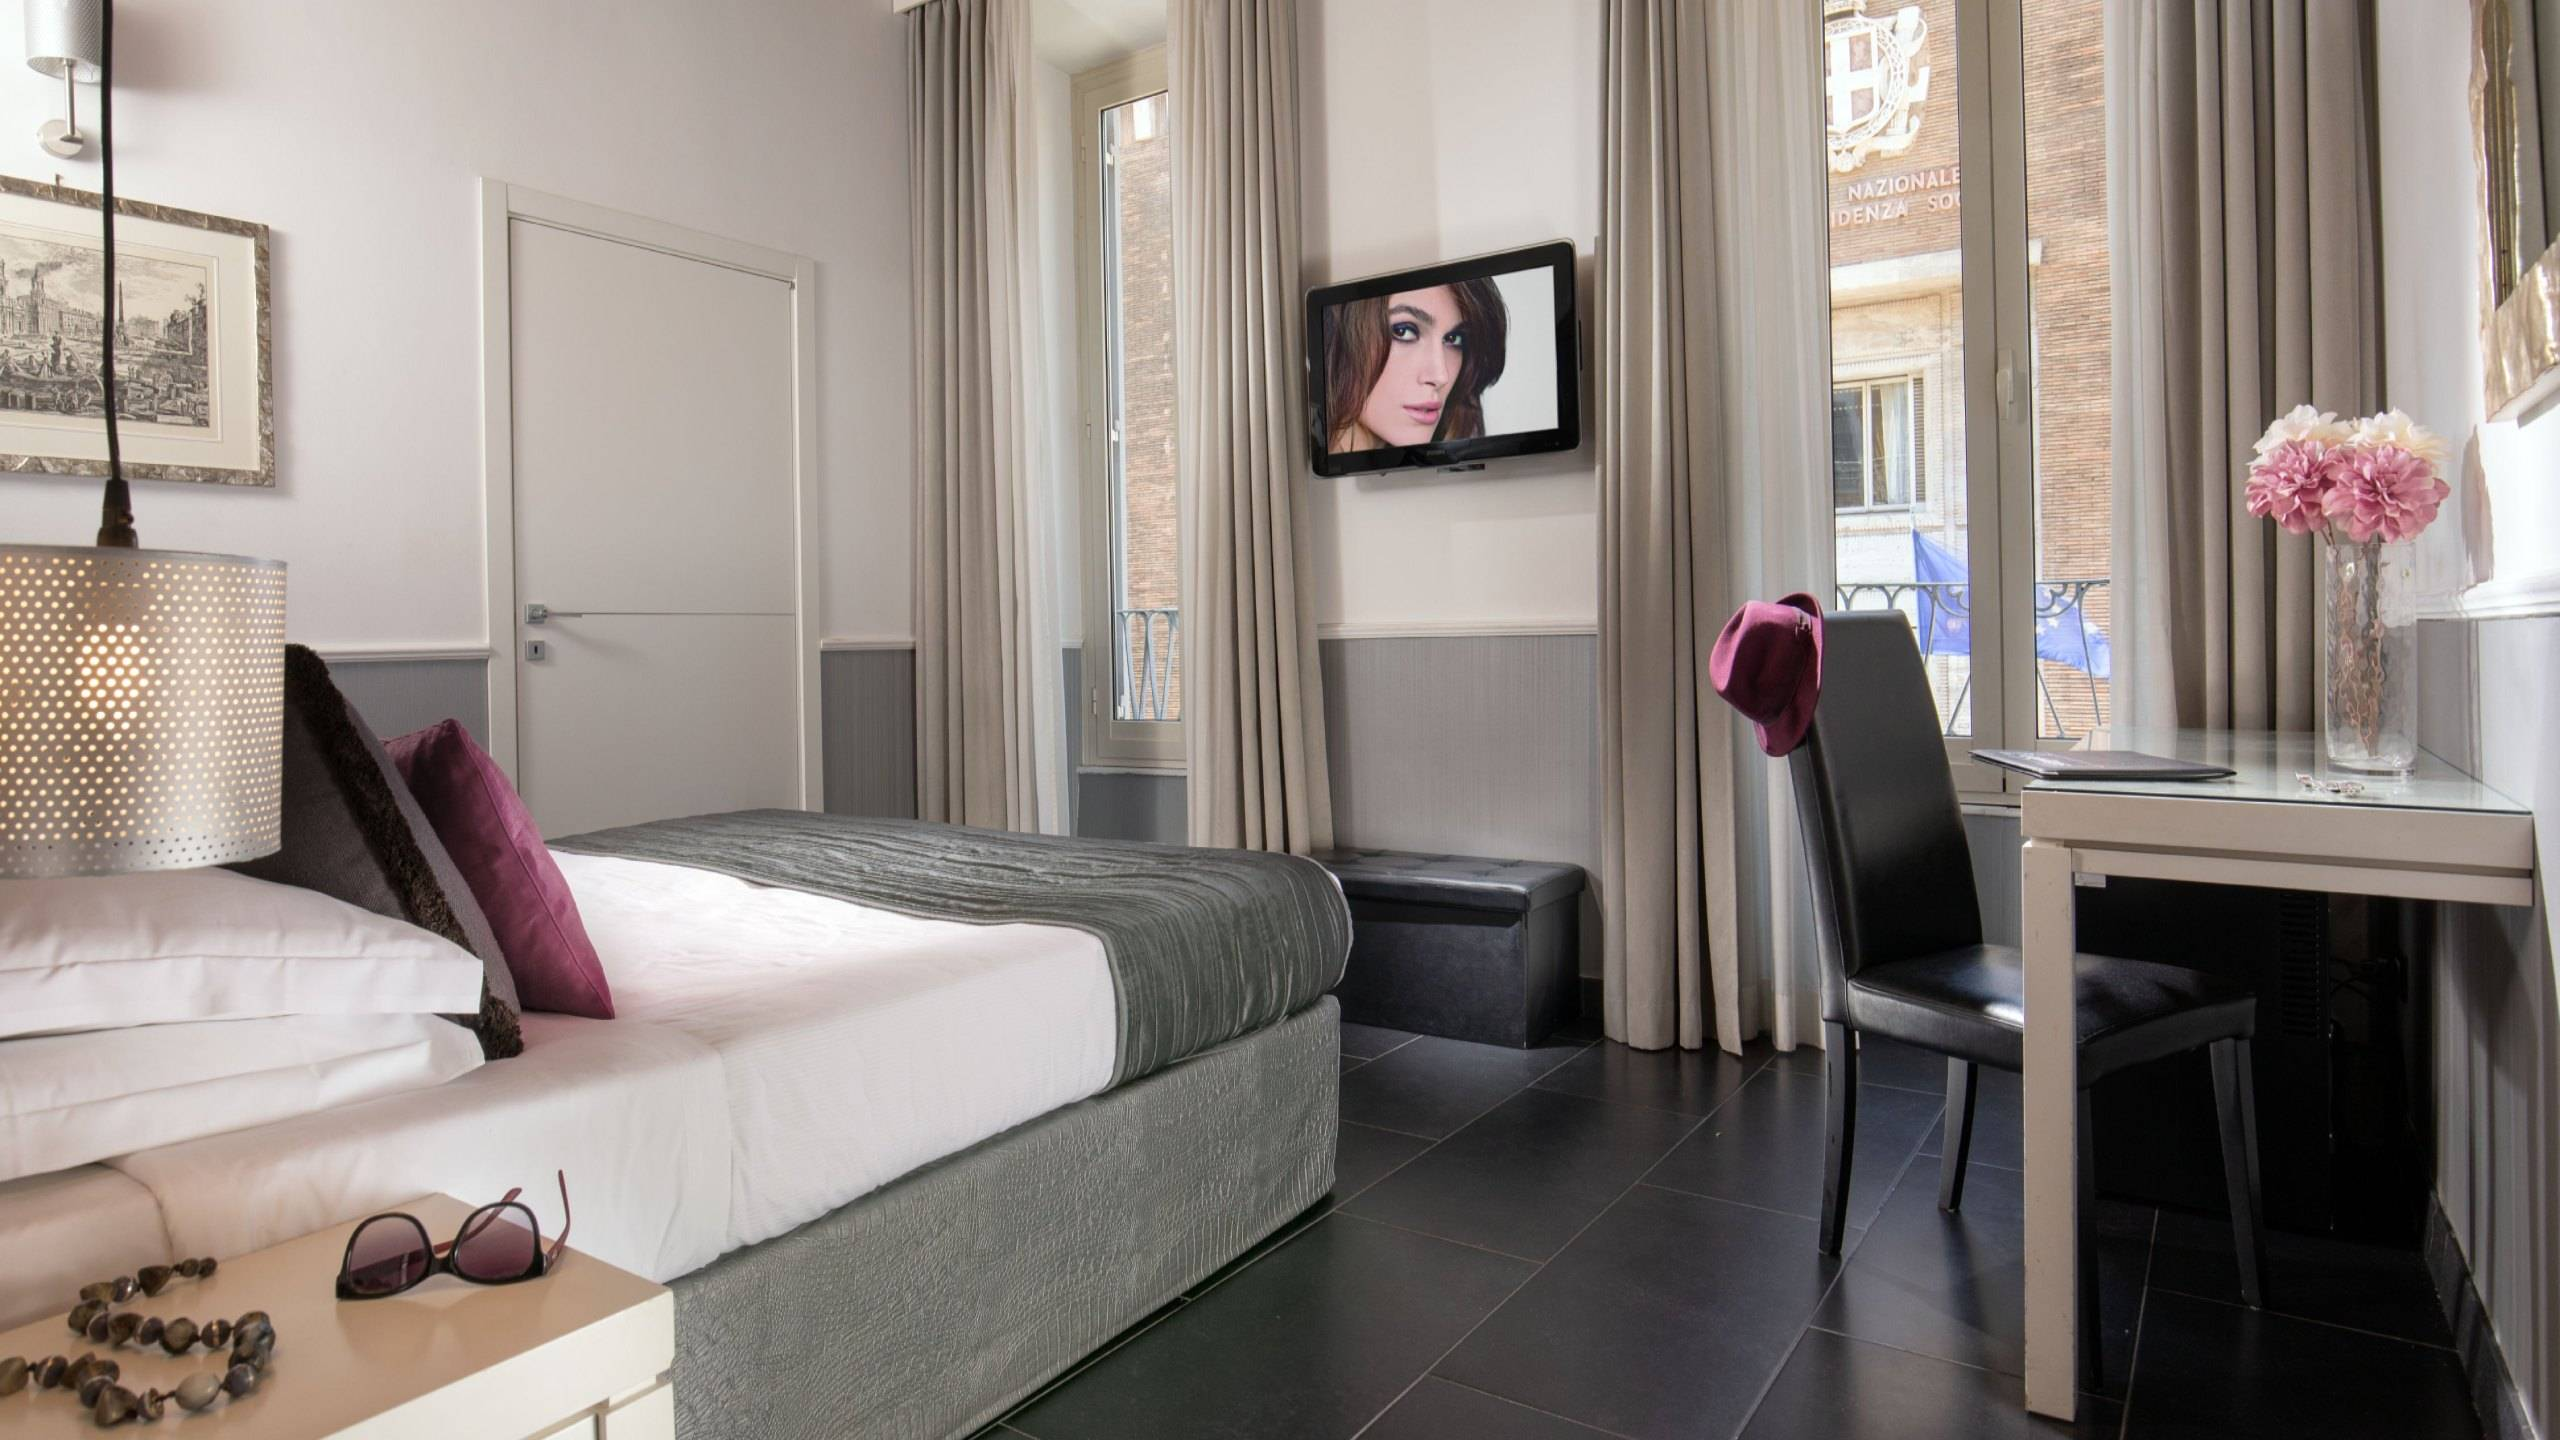 stay-inn-roma-foto-nuove-2020-5